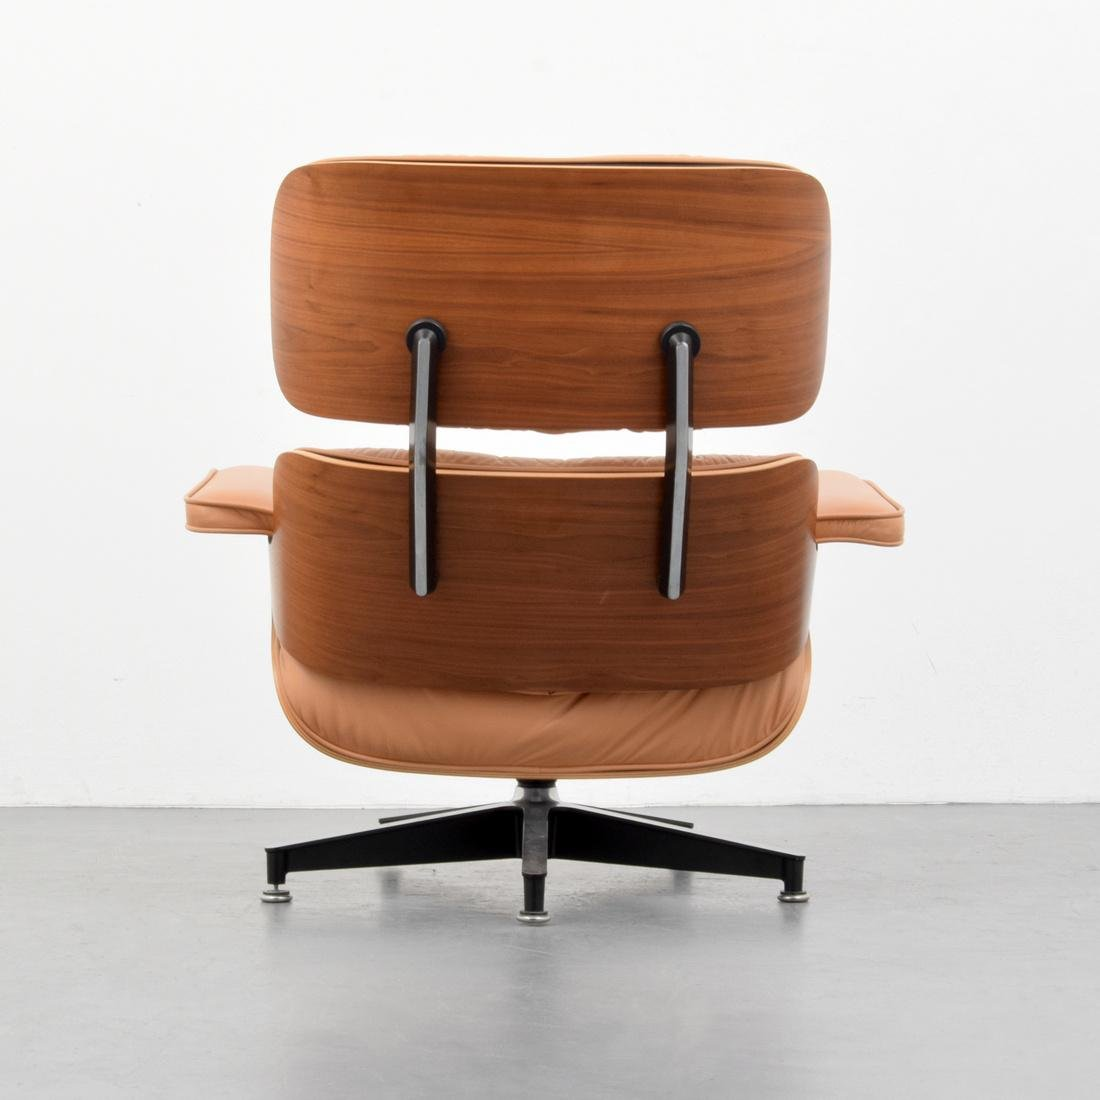 Charles & Ray Eames Lounge Chair - 2